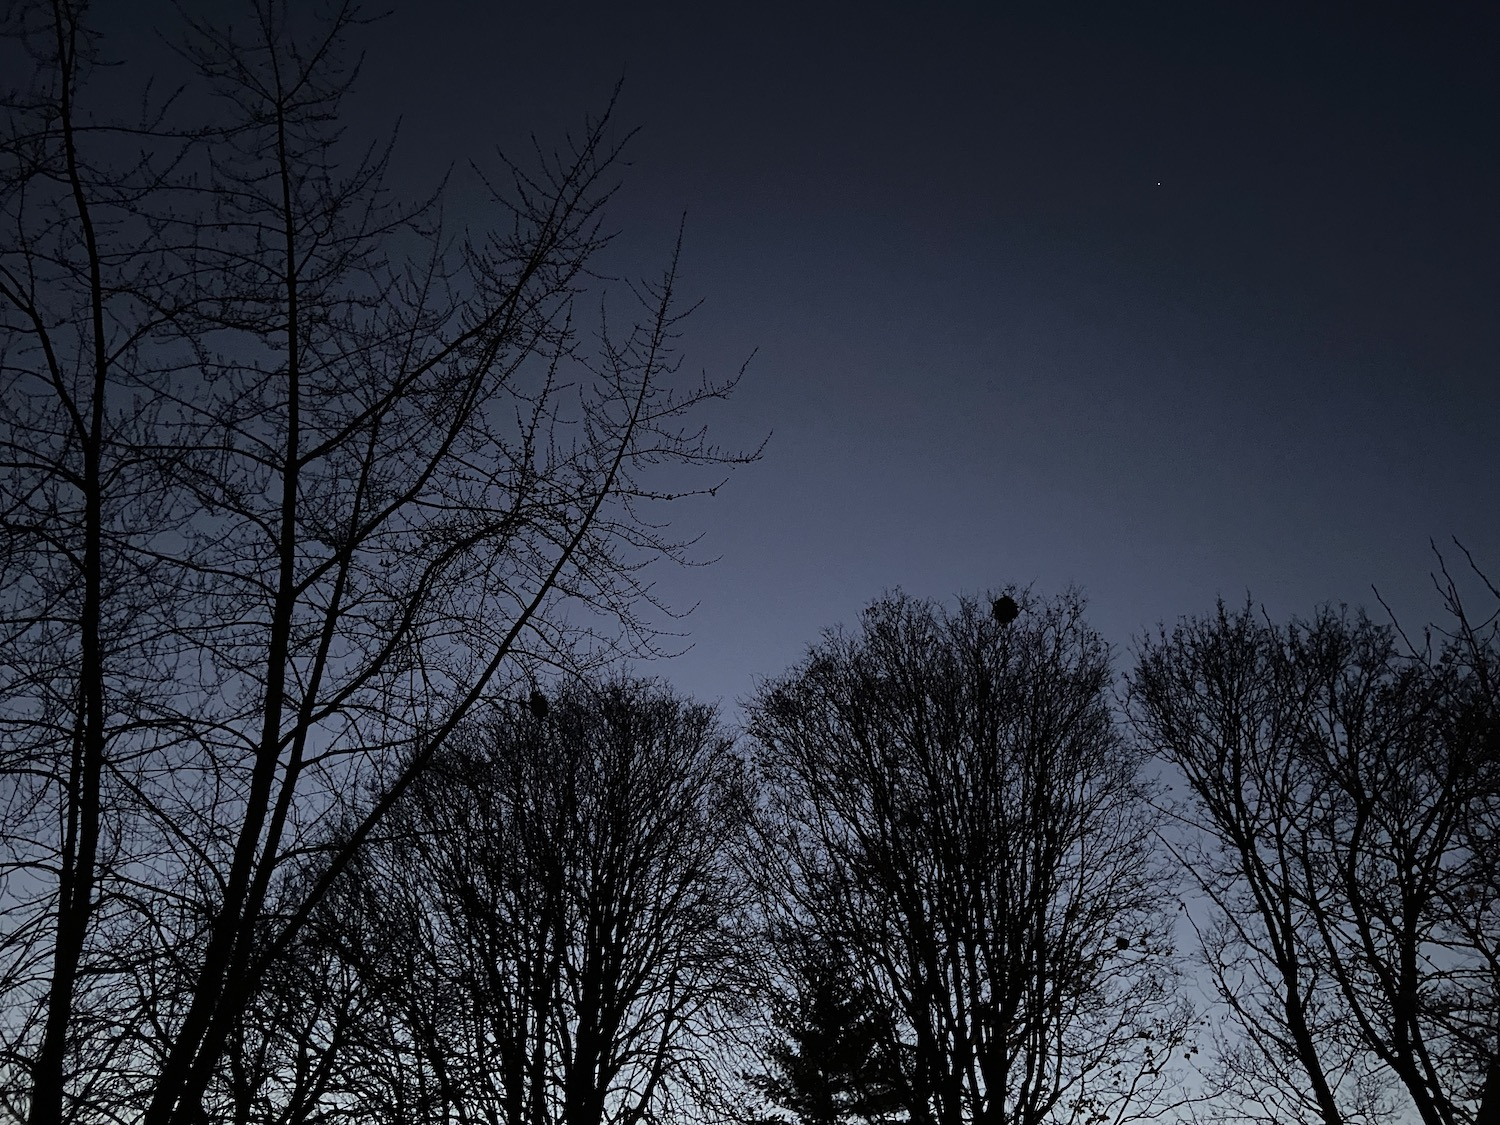 The silhouettes of trees at dusk as seen on a Chicago city street